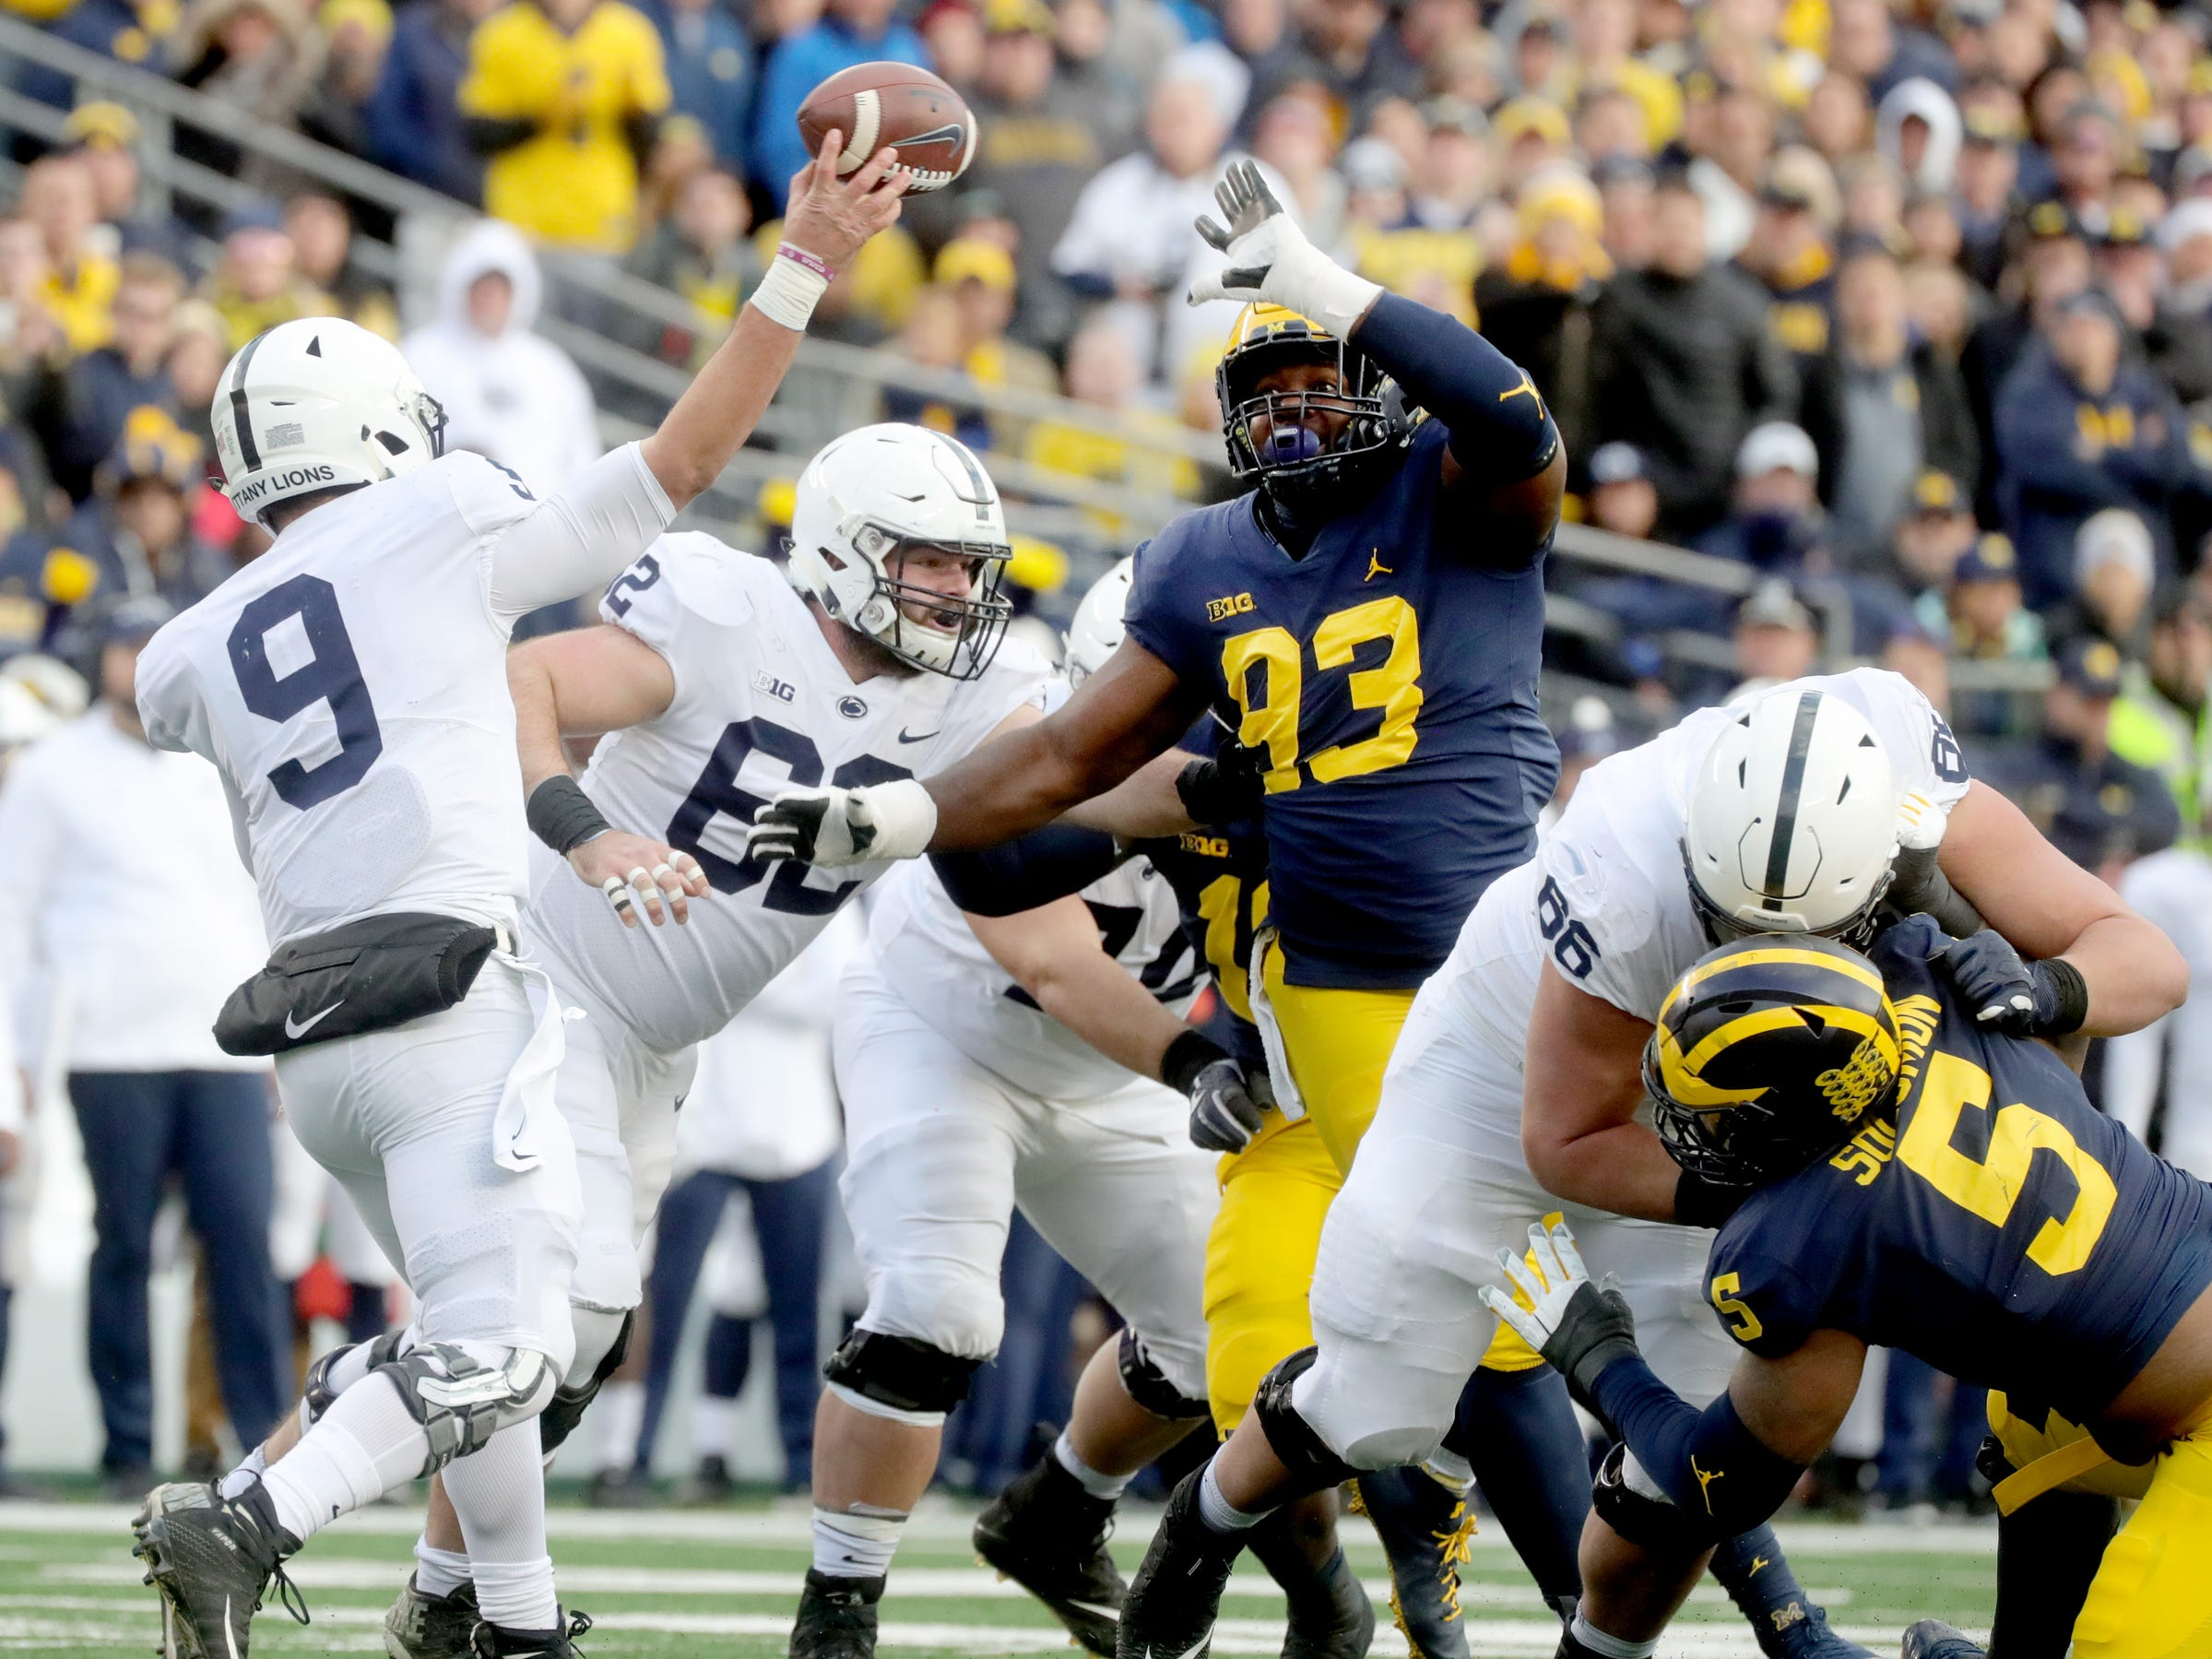 Michigan's Lawrence Marshall rushes Penn State quarterback Trace McSorley during the first half Saturday, November 3, 2018 at Michigan Stadium in Ann Arbor.